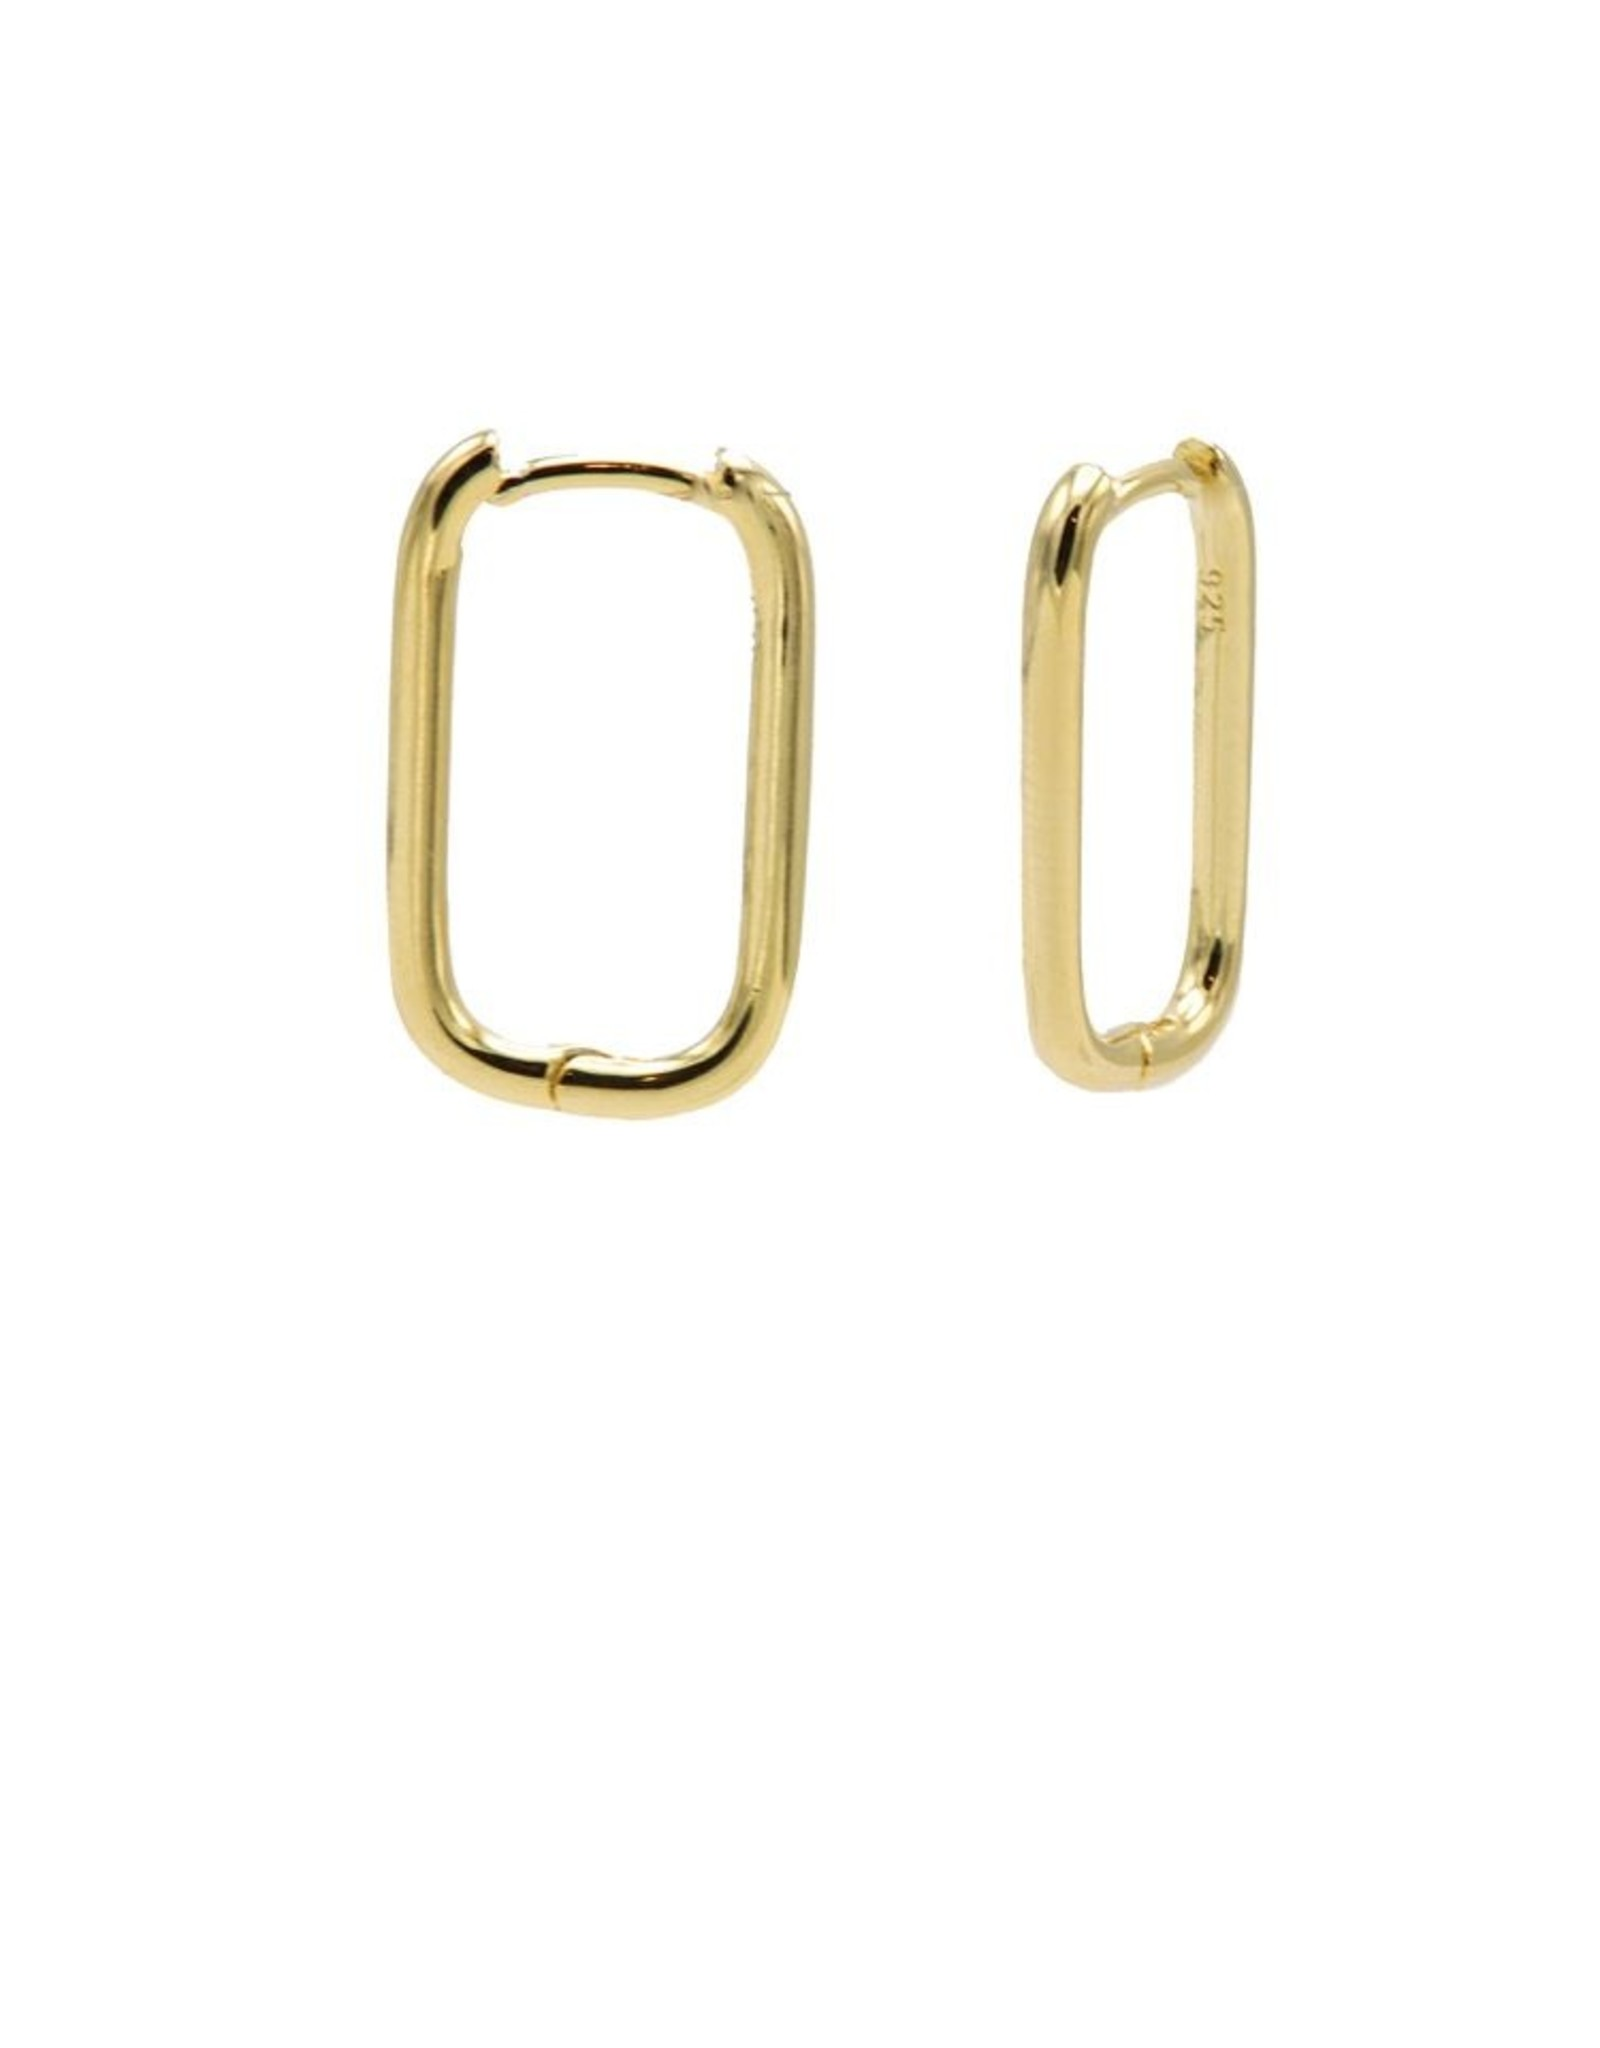 Karma Plain Hinged Hoops Round Square Goldplated 20MM Set